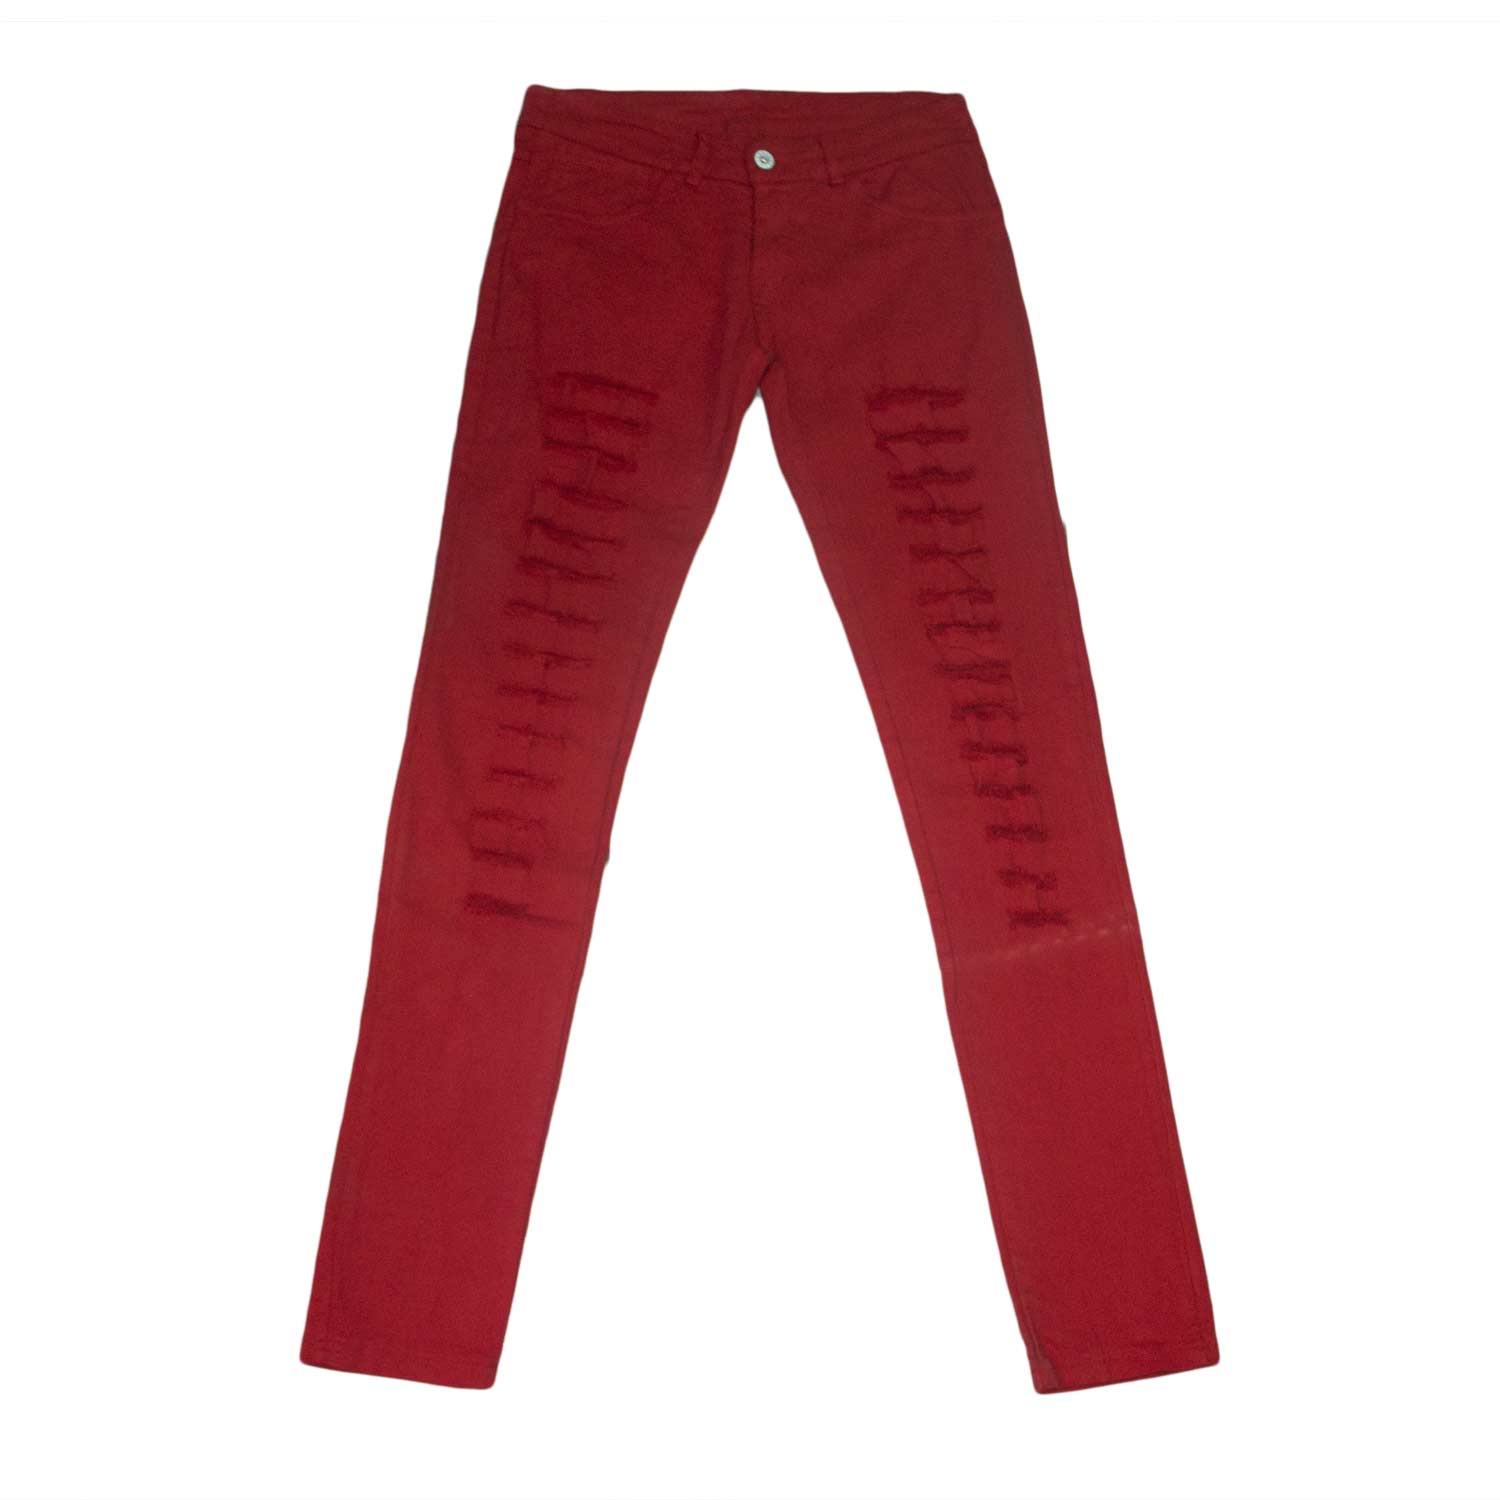 Pantalone stracciato donna girl rosso red chic glamour made in italy.